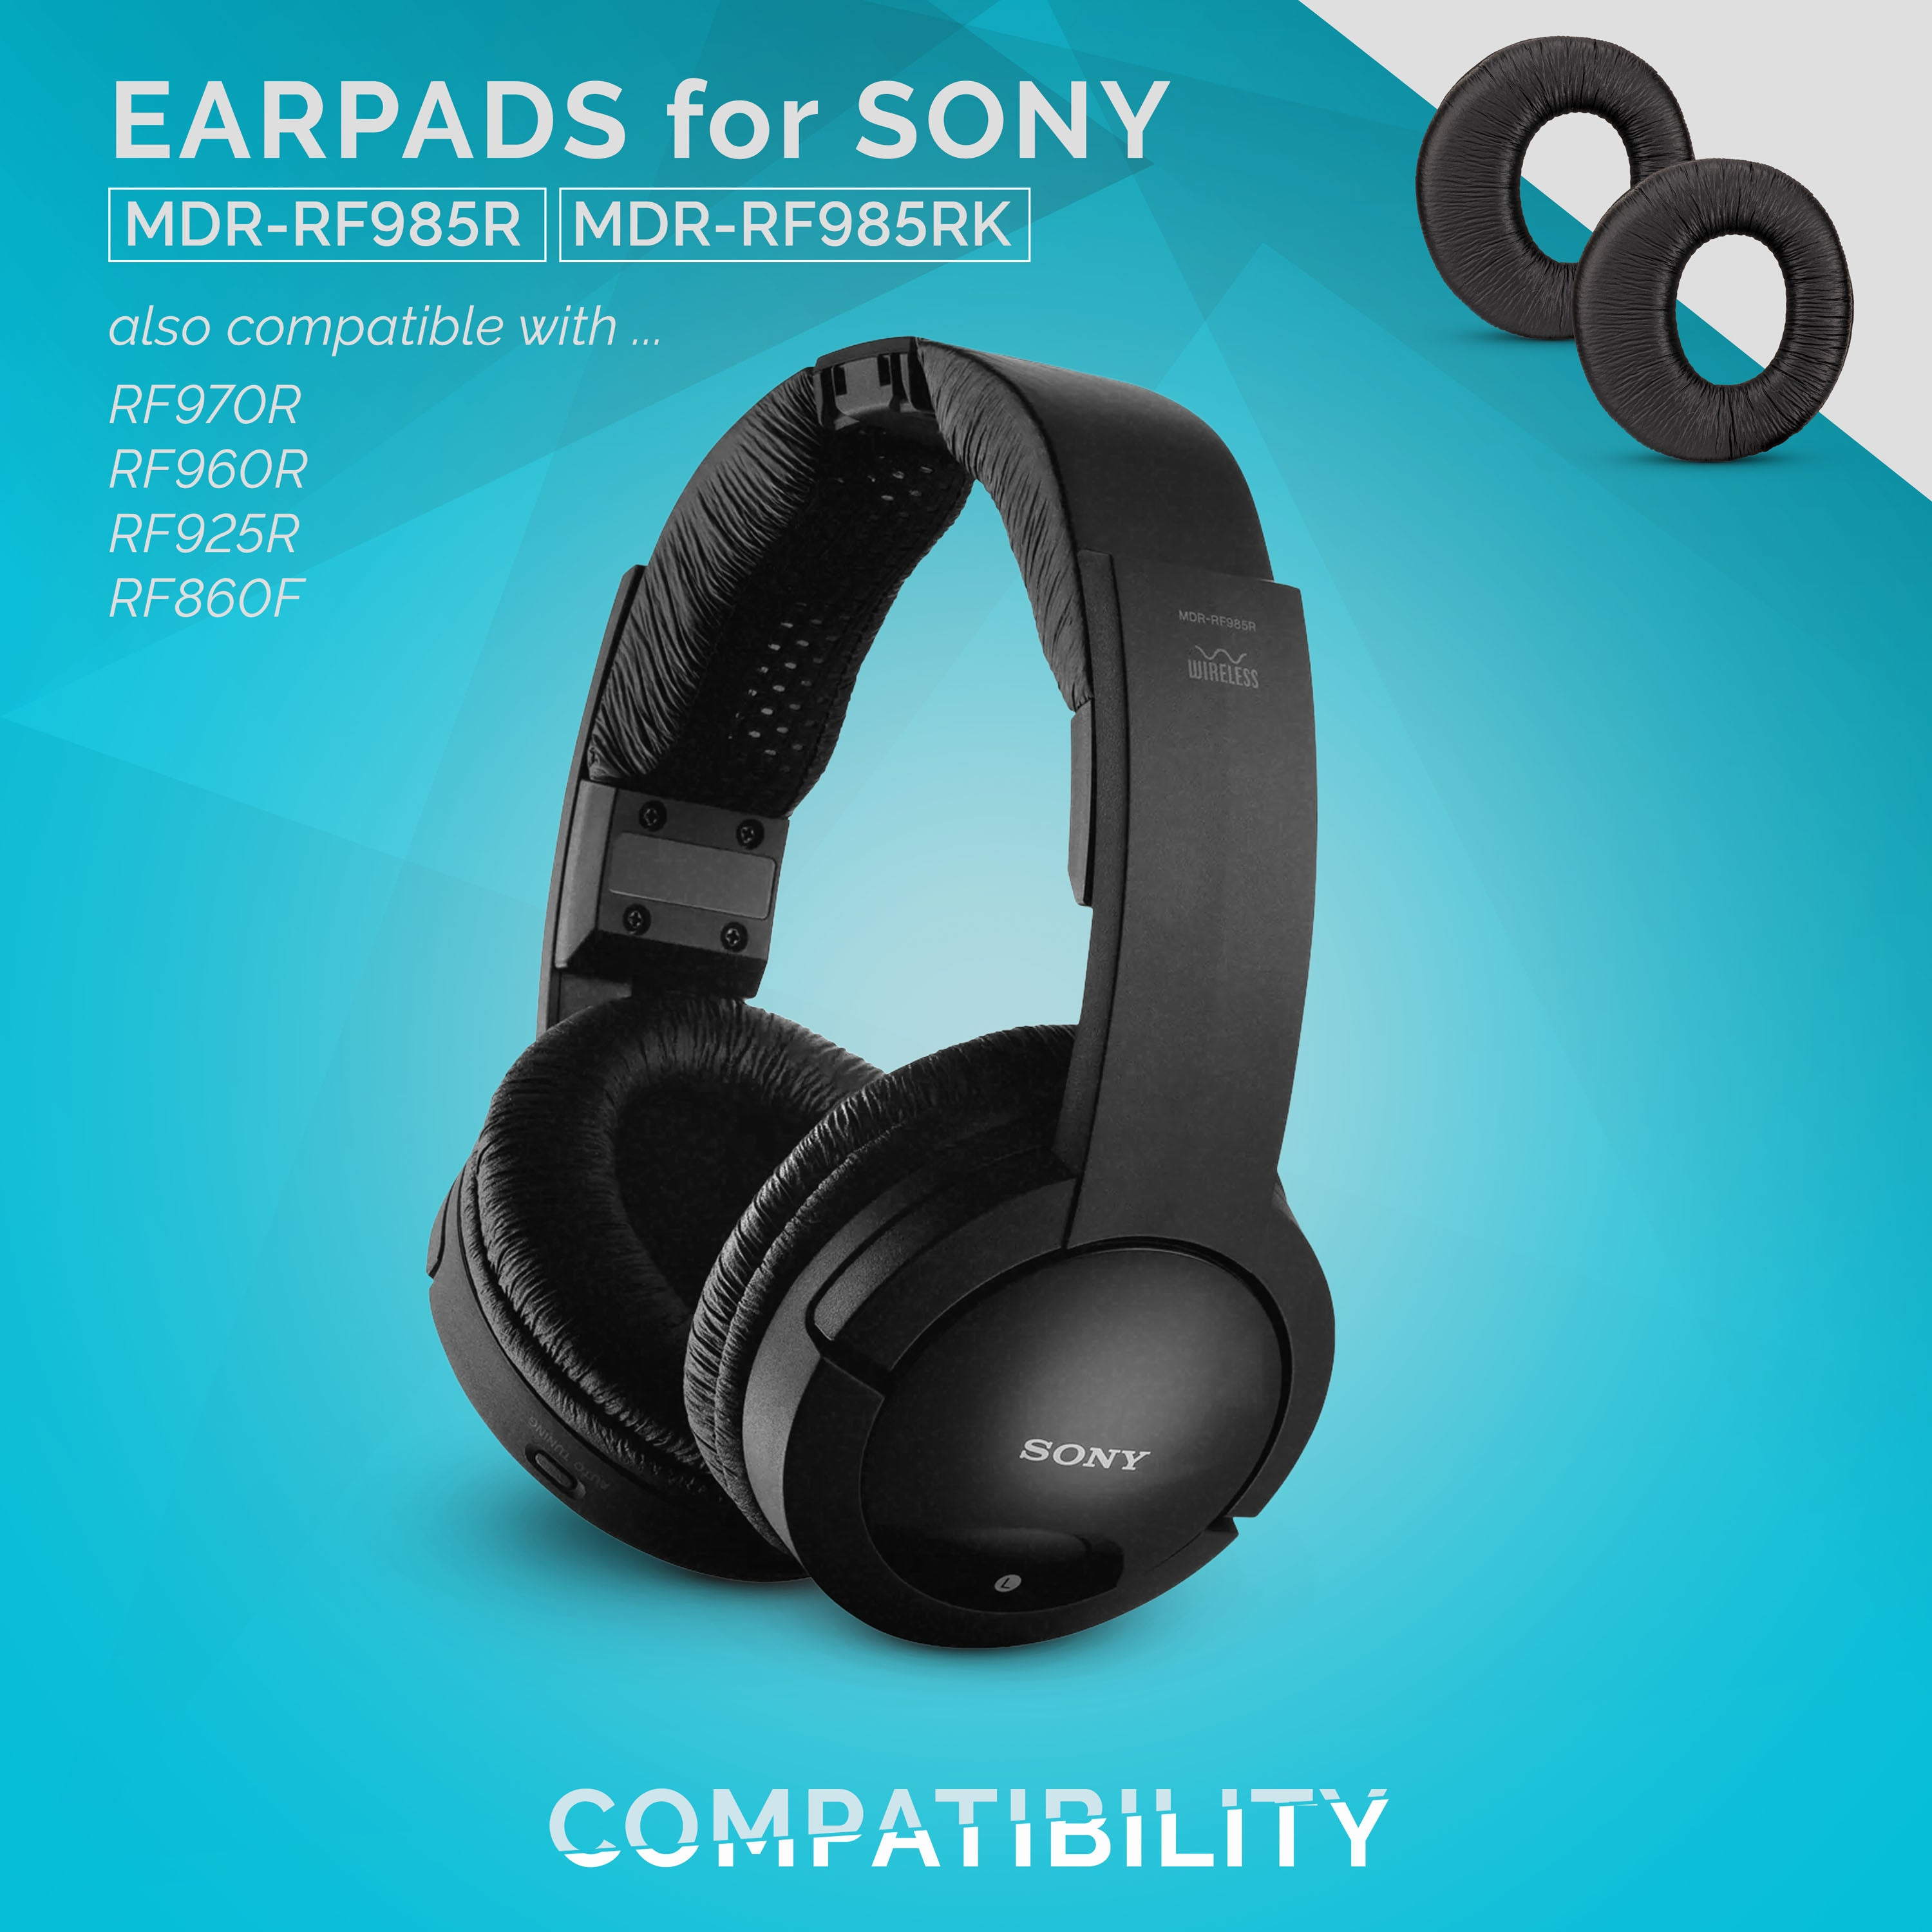 Softer Leather WC Replacement Ear Pads for Sony MDR-RF985R RF970 RF970RK RF960RK RF960R RF925RK Headphones Black Enhanced Noise Isolation Added Thickness Luxurious Memory Foam